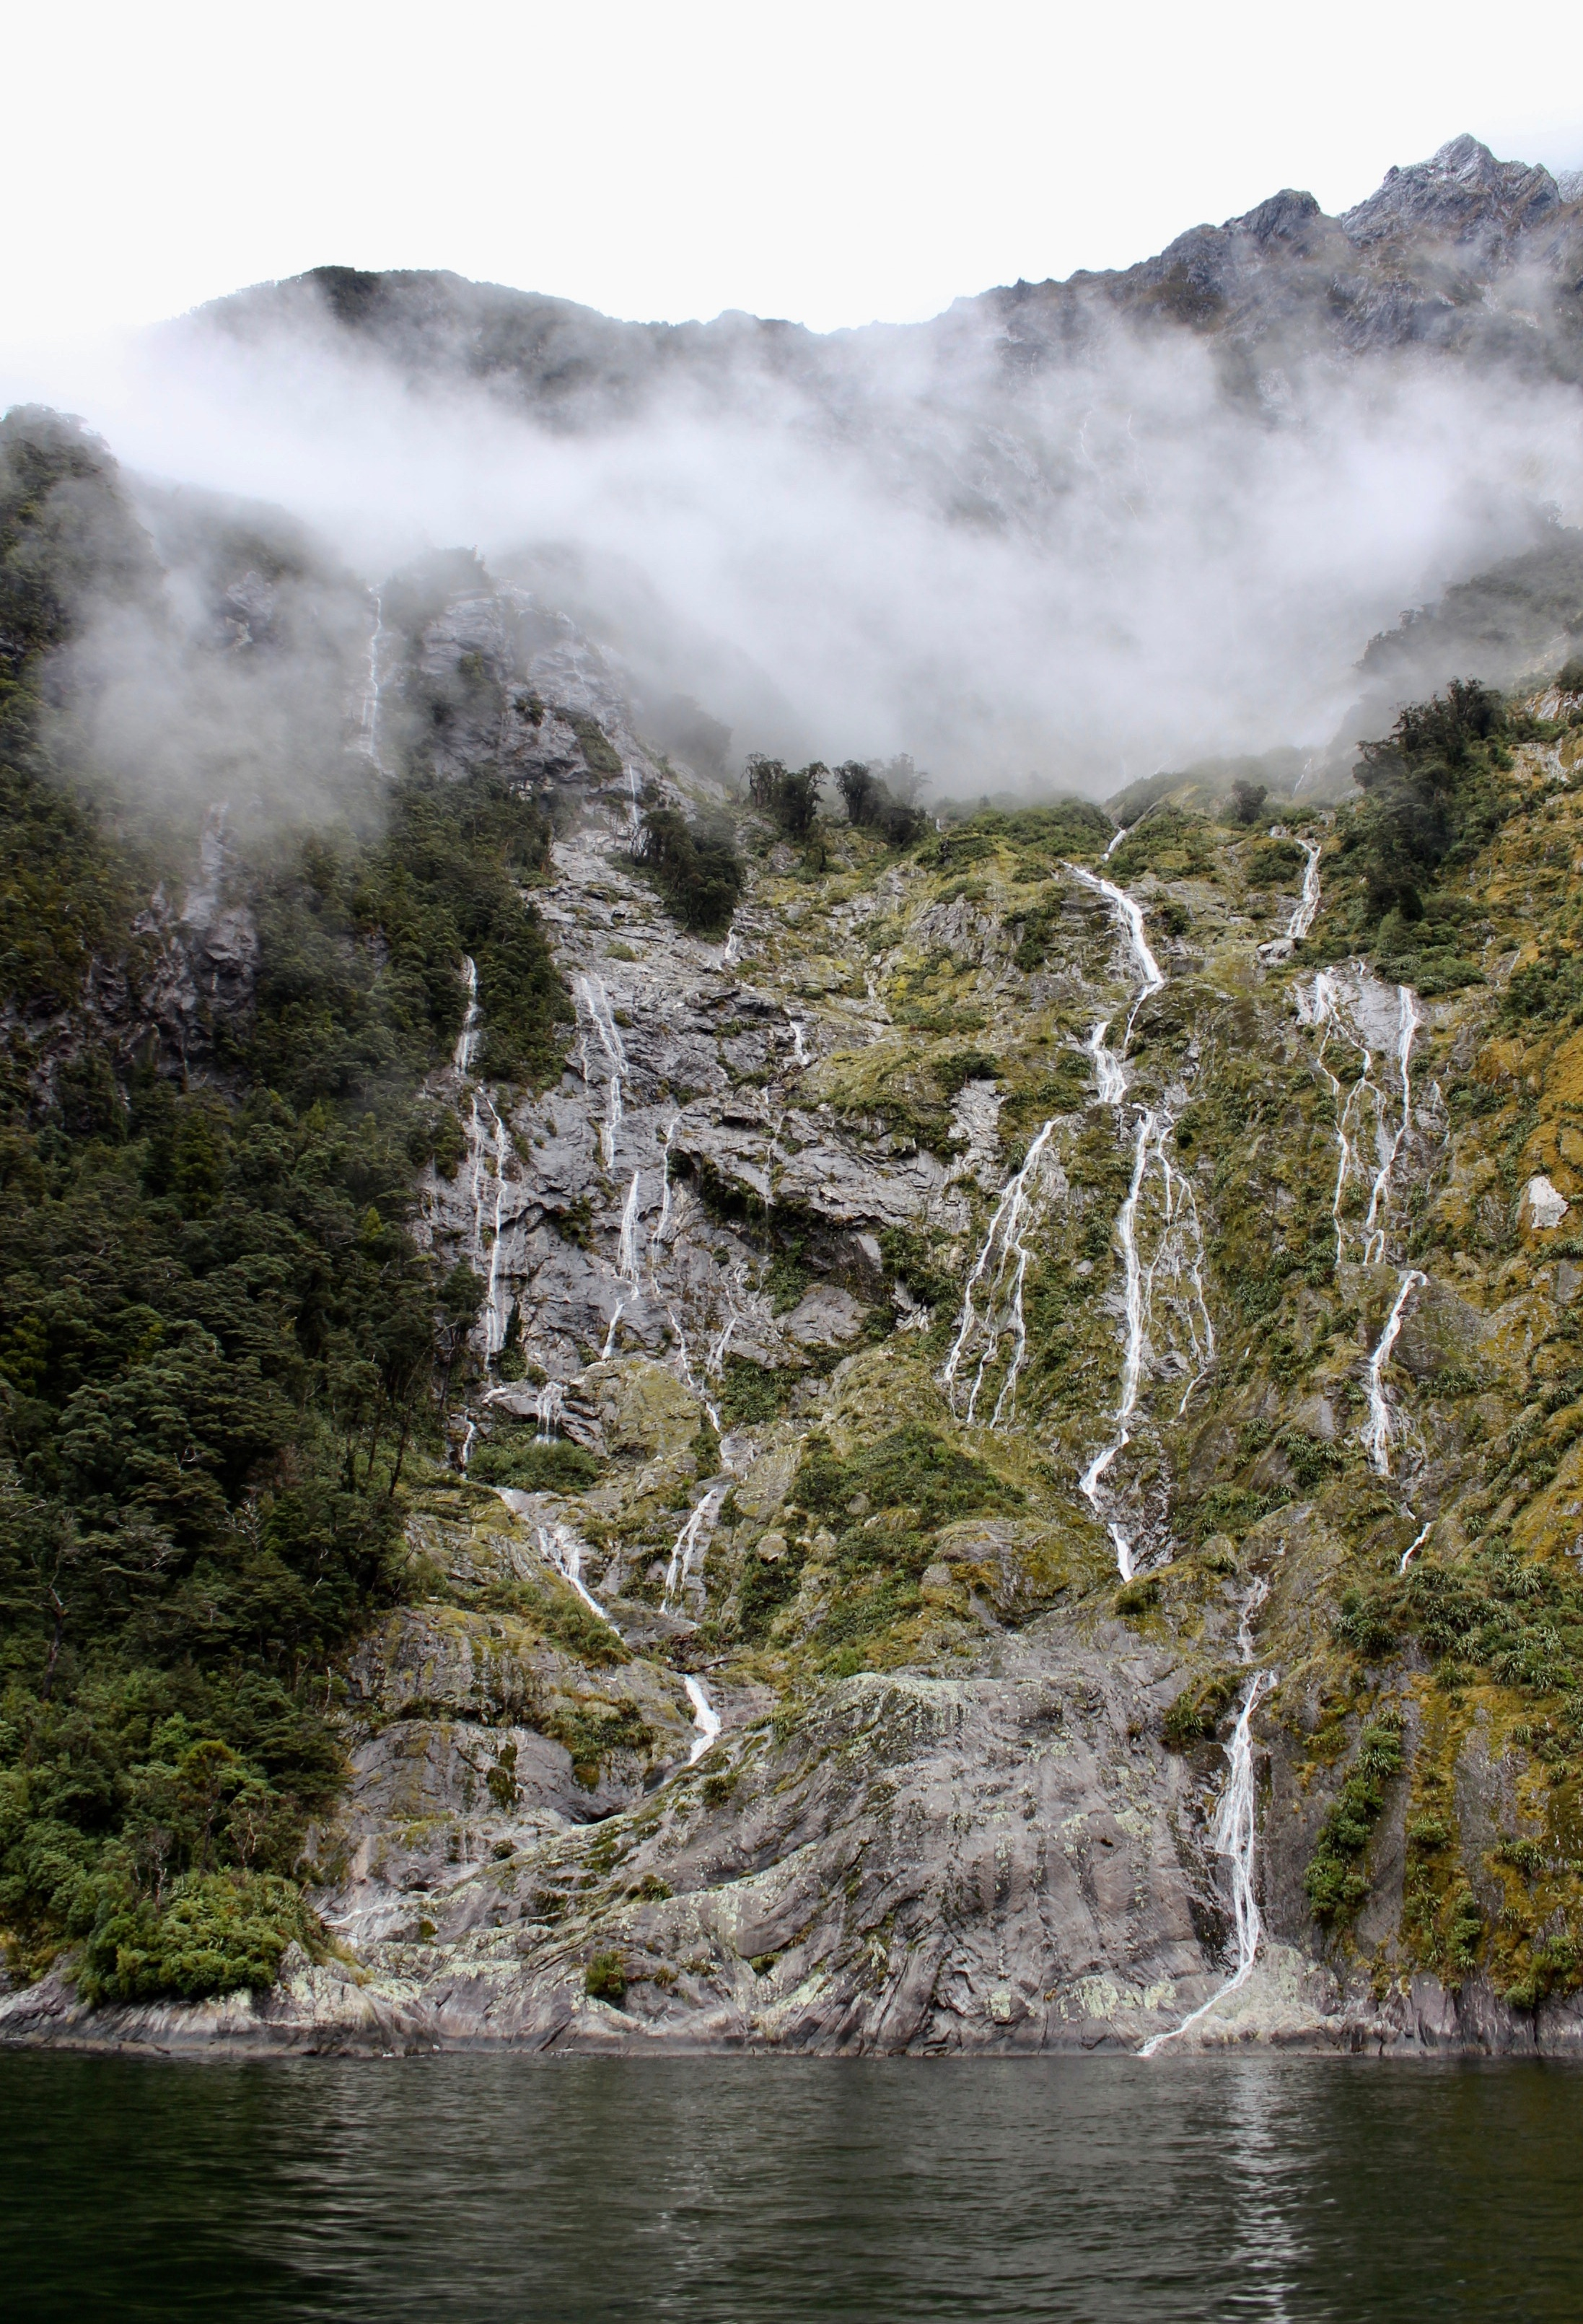 Waterfalls are a common sight in Milford Sound